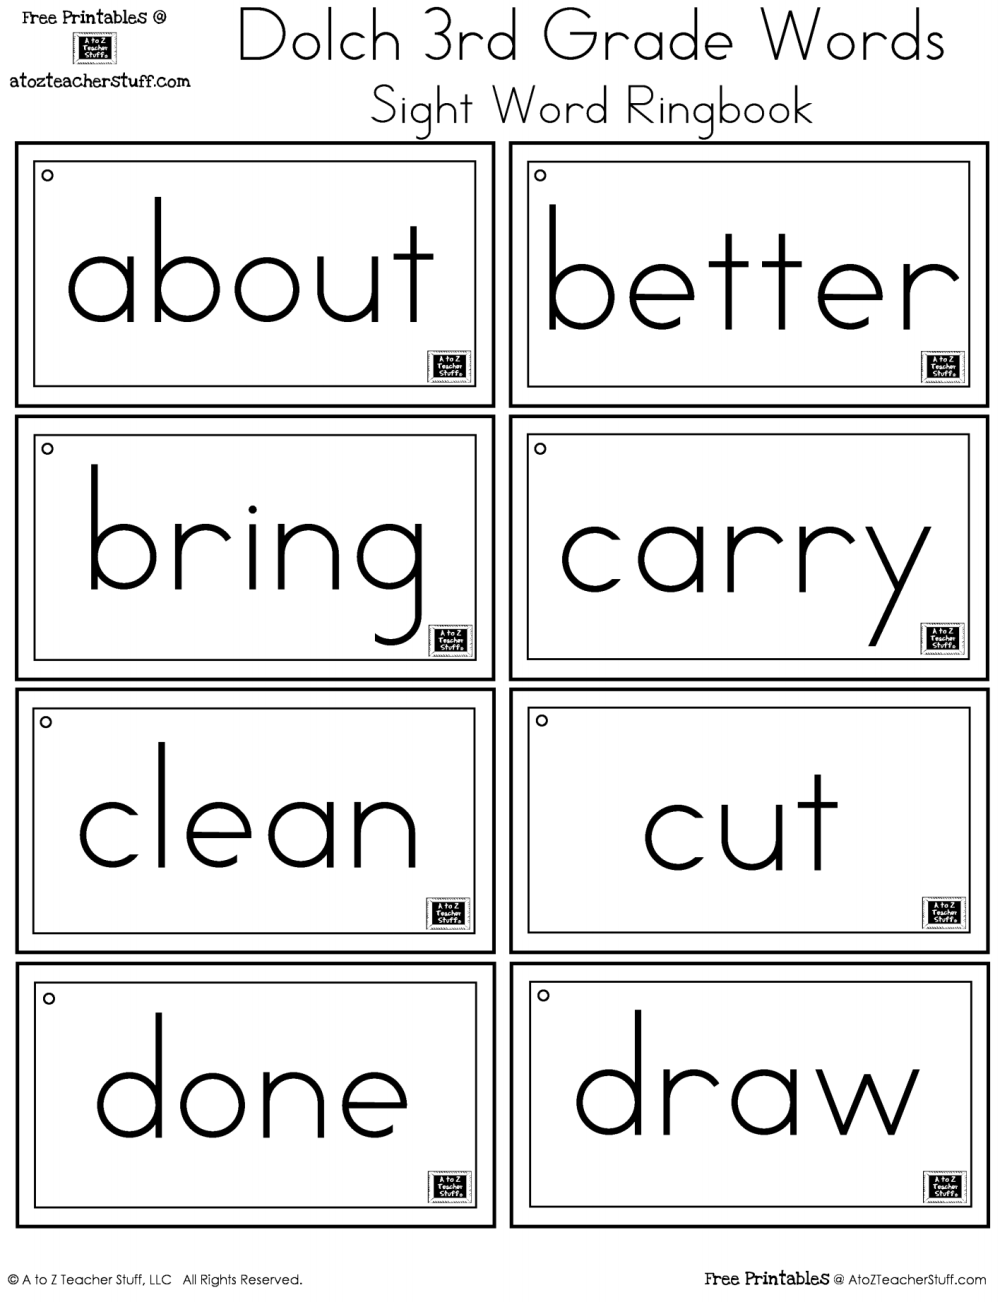 medium resolution of Third Grade Dolch Sight Words Ring Book   A to Z Teacher Stuff Printable  Pages and Worksheets